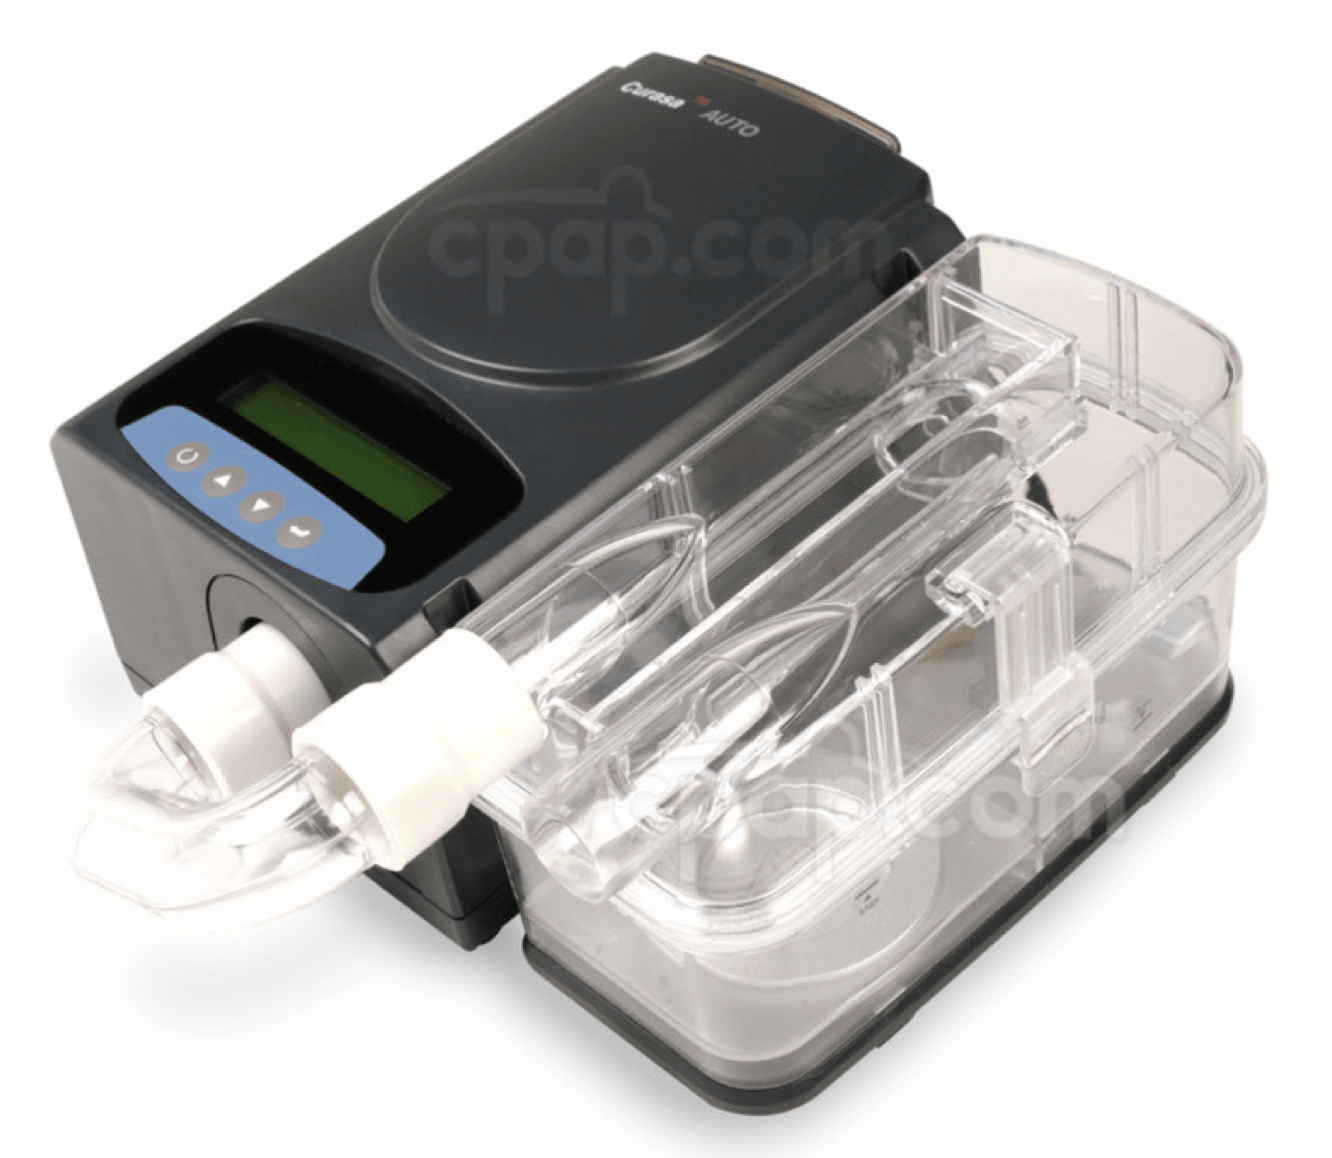 It's the most affordable machine   humidifier option at CPAP.com. #425F89